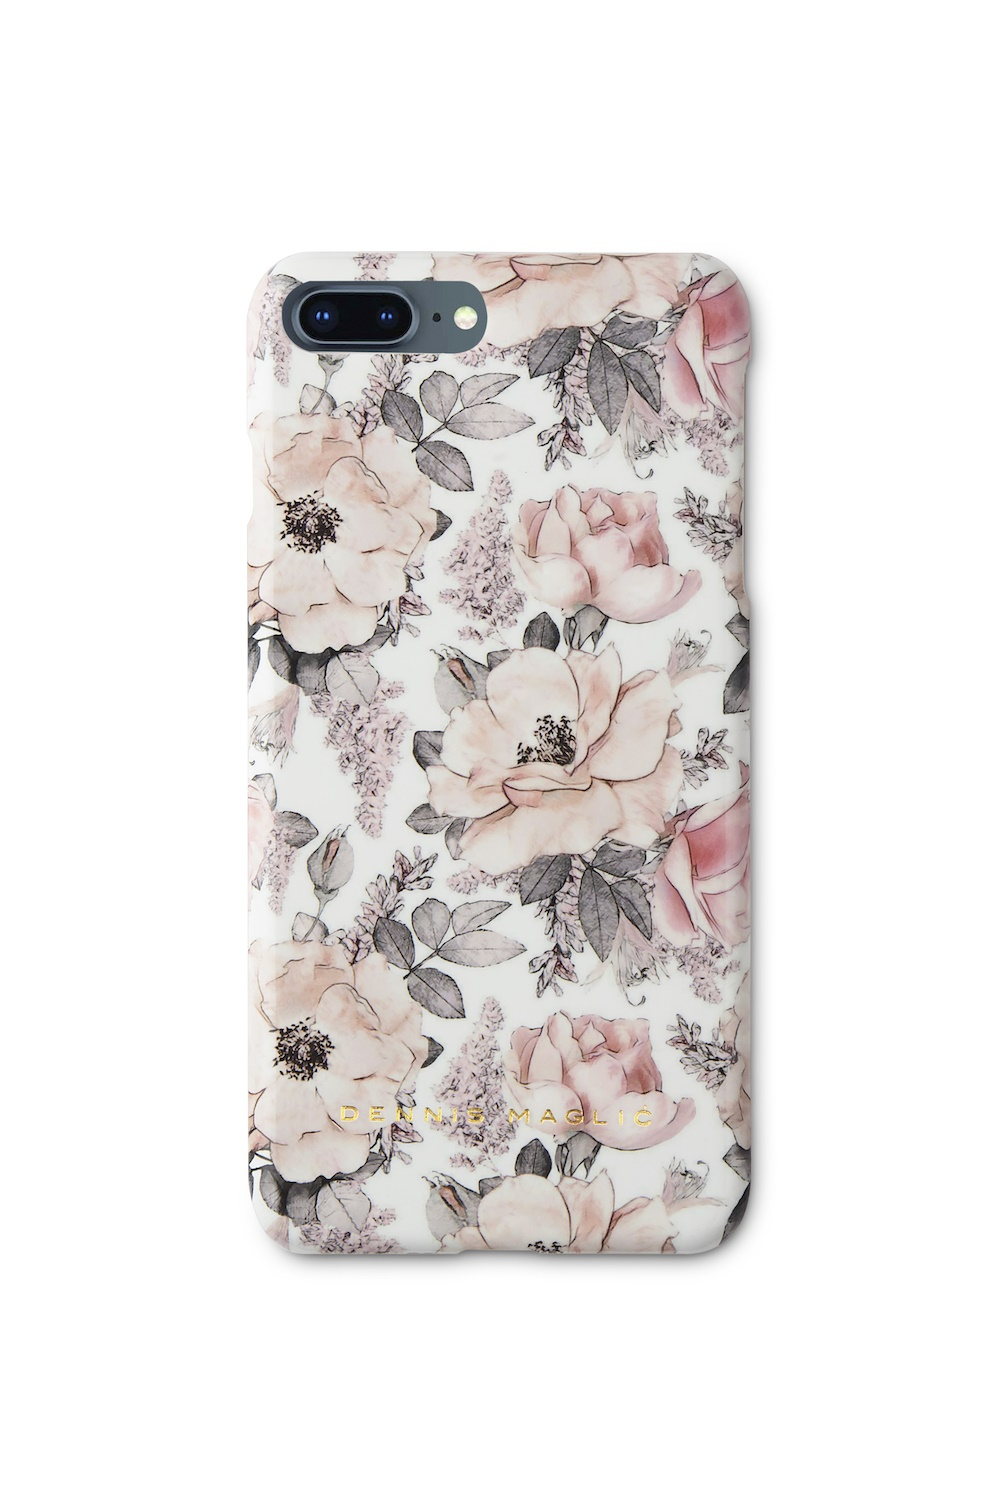 Fashion Case Praire Flowers